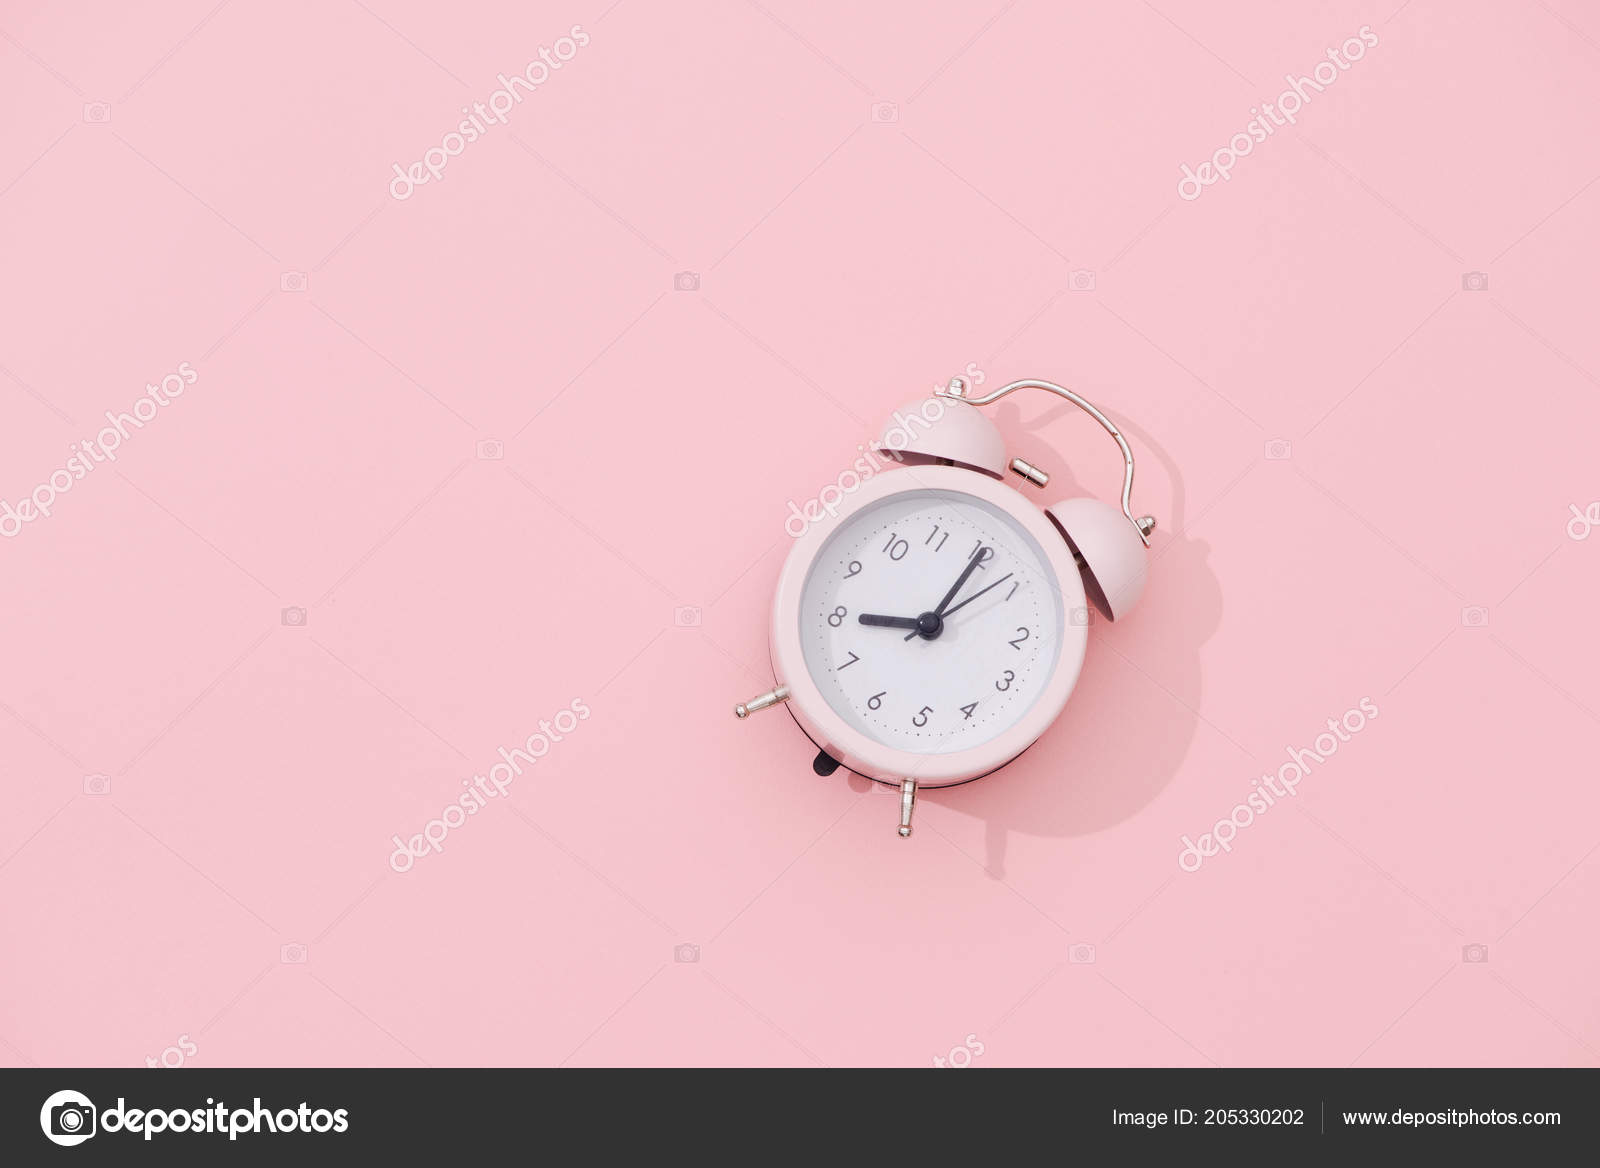 Light Pink Vintage Alarm Clock Pink Background — Stock Photo